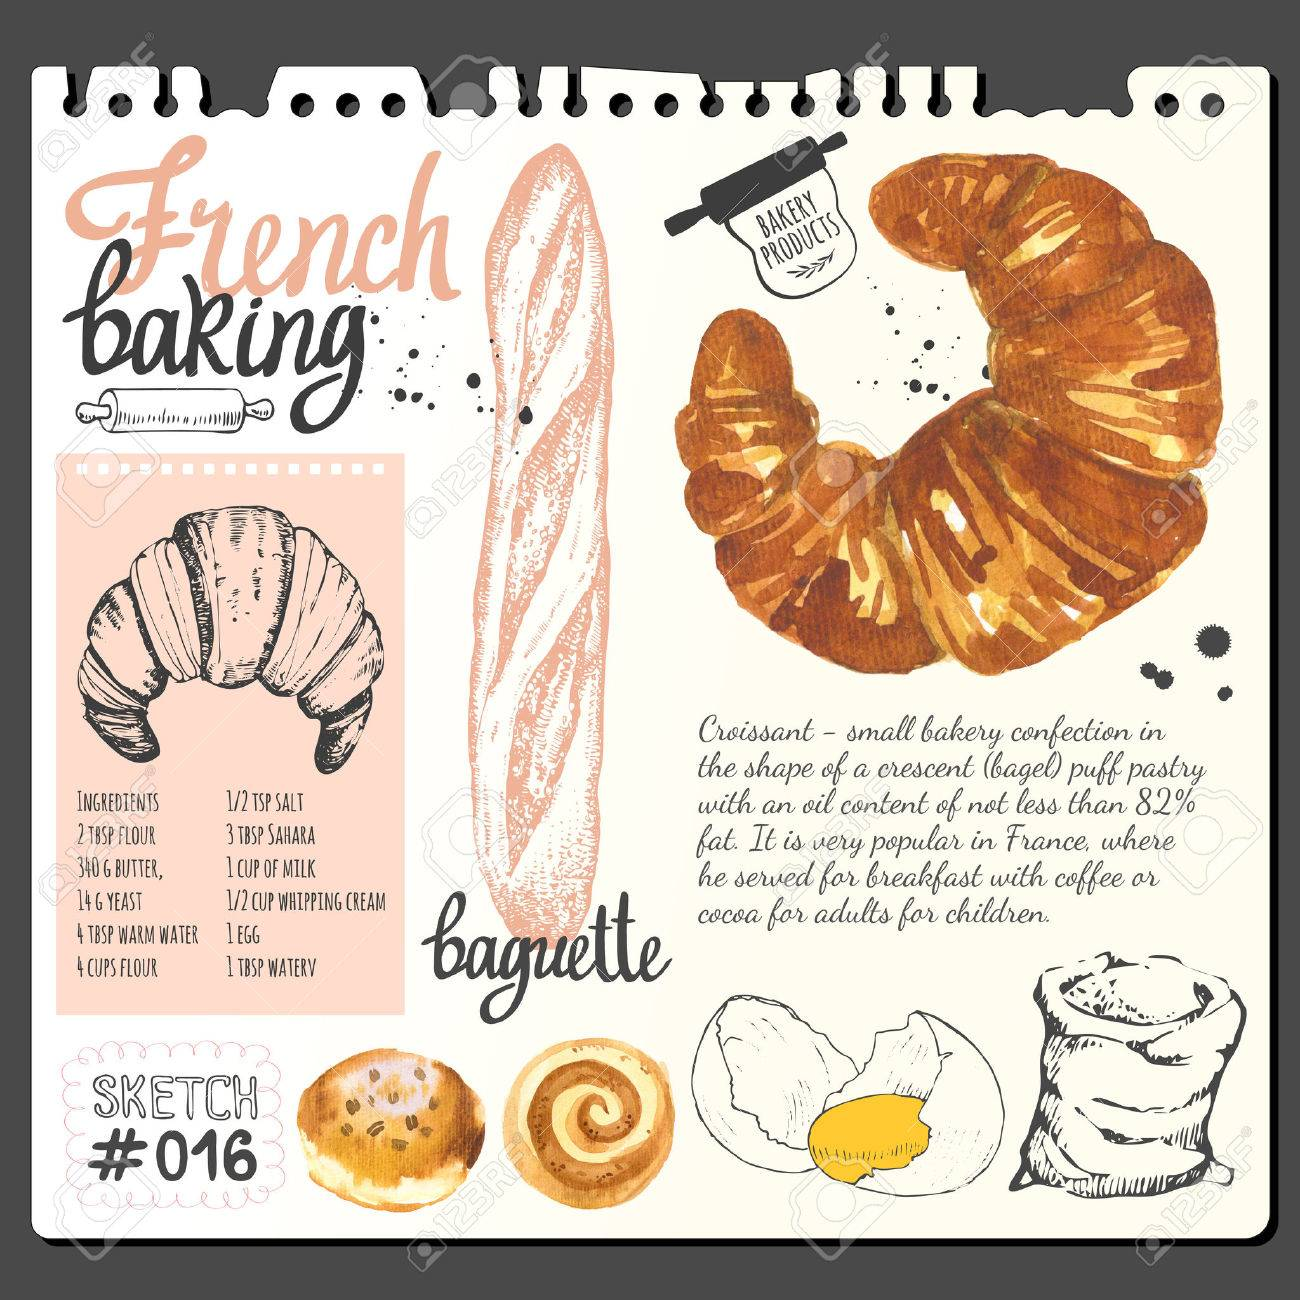 Croissant Bread Bun Baguette In Sketch Style Watercolor And Stock Photo Picture And Royalty Free Image Image 53456161